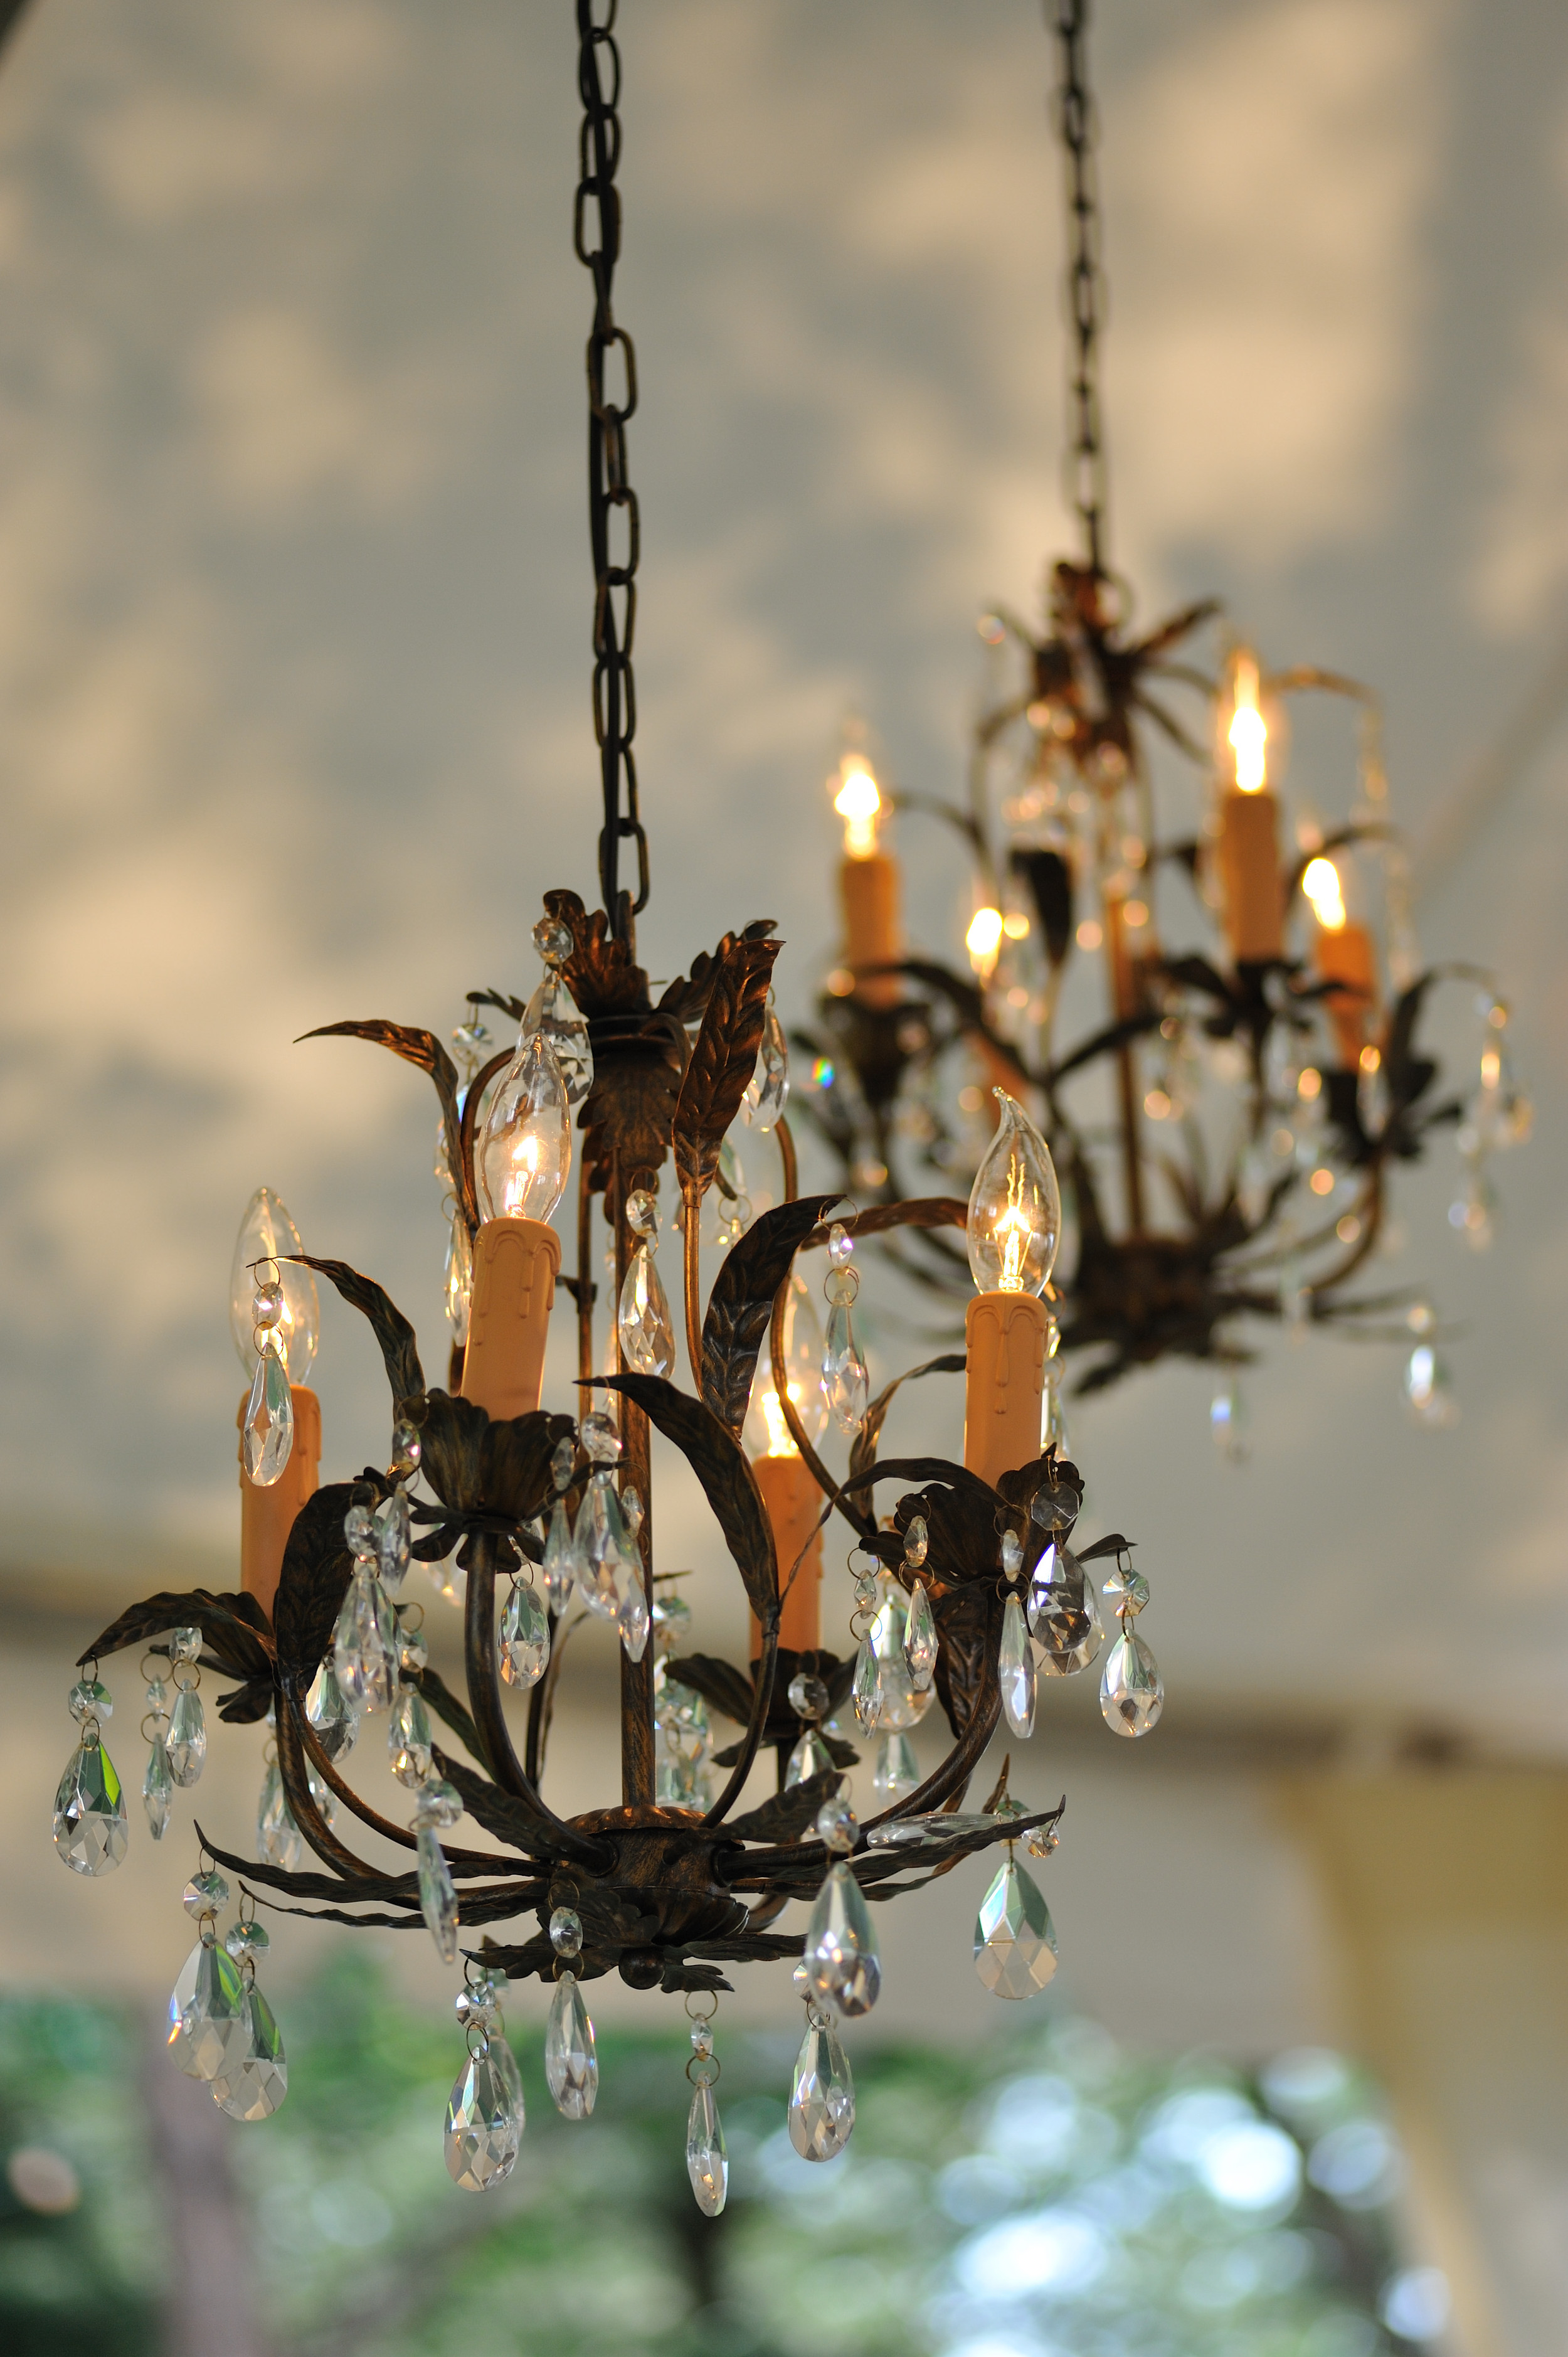 chandelier - wrought iron with hanging crystals  2.jpg